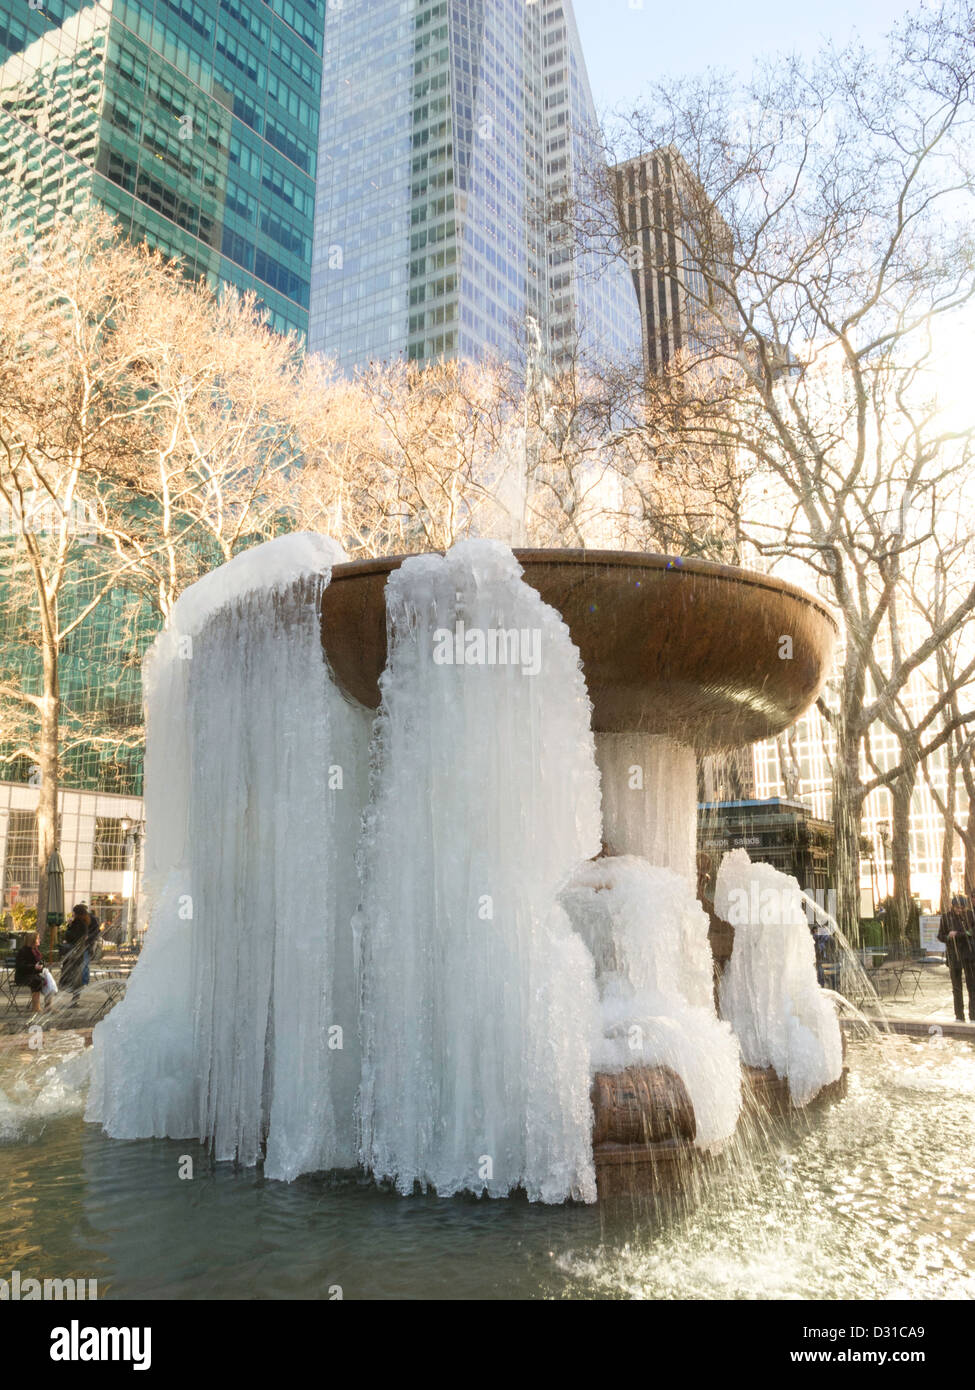 The Josephine Shaw Lowell Memorial Fountain, Frozen during Winter Storm Khan, Bryant Park, NYC - Stock Image